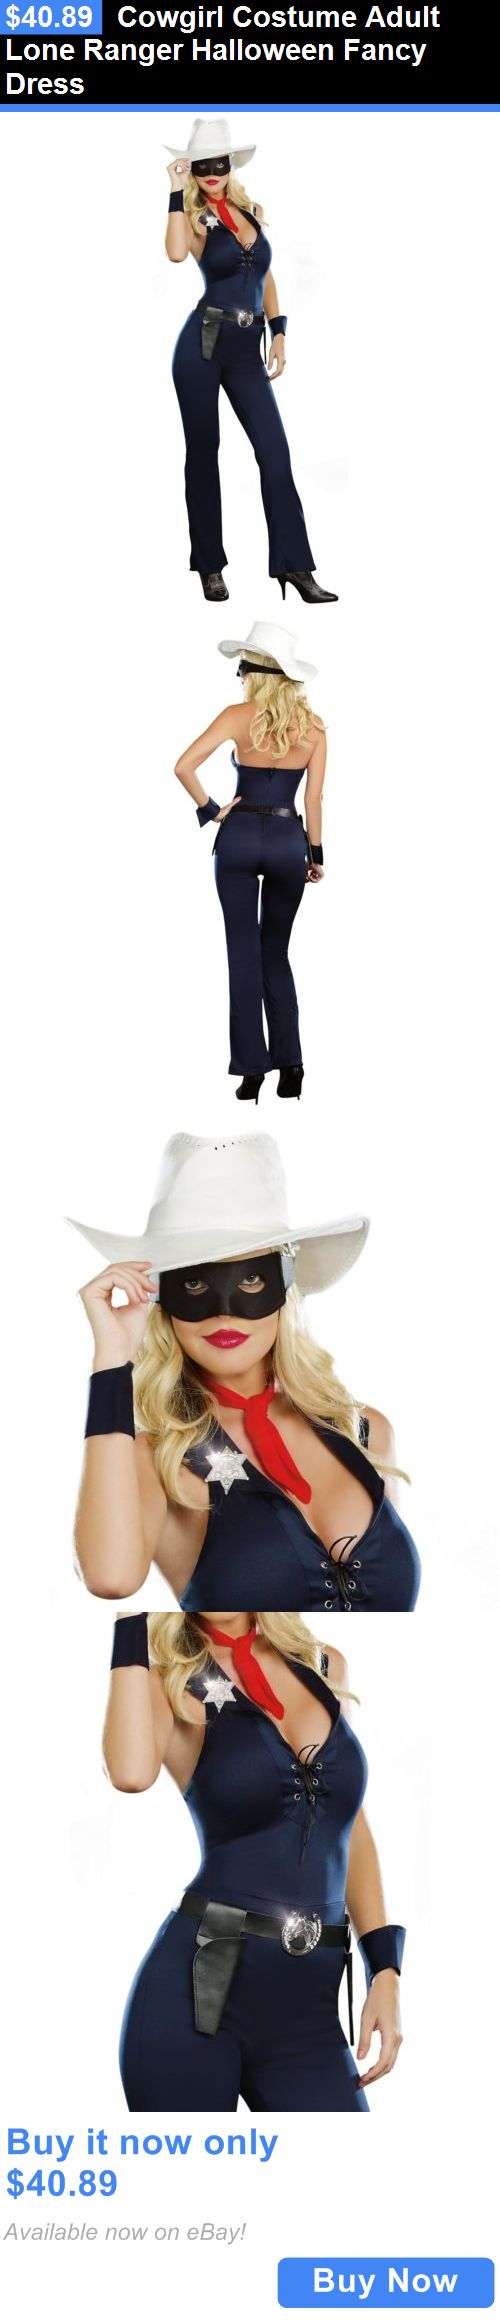 Halloween Costumes Women: Cowgirl Costume Adult Lone Ranger Halloween Fancy Dress BUY IT NOW ONLY: $40.89